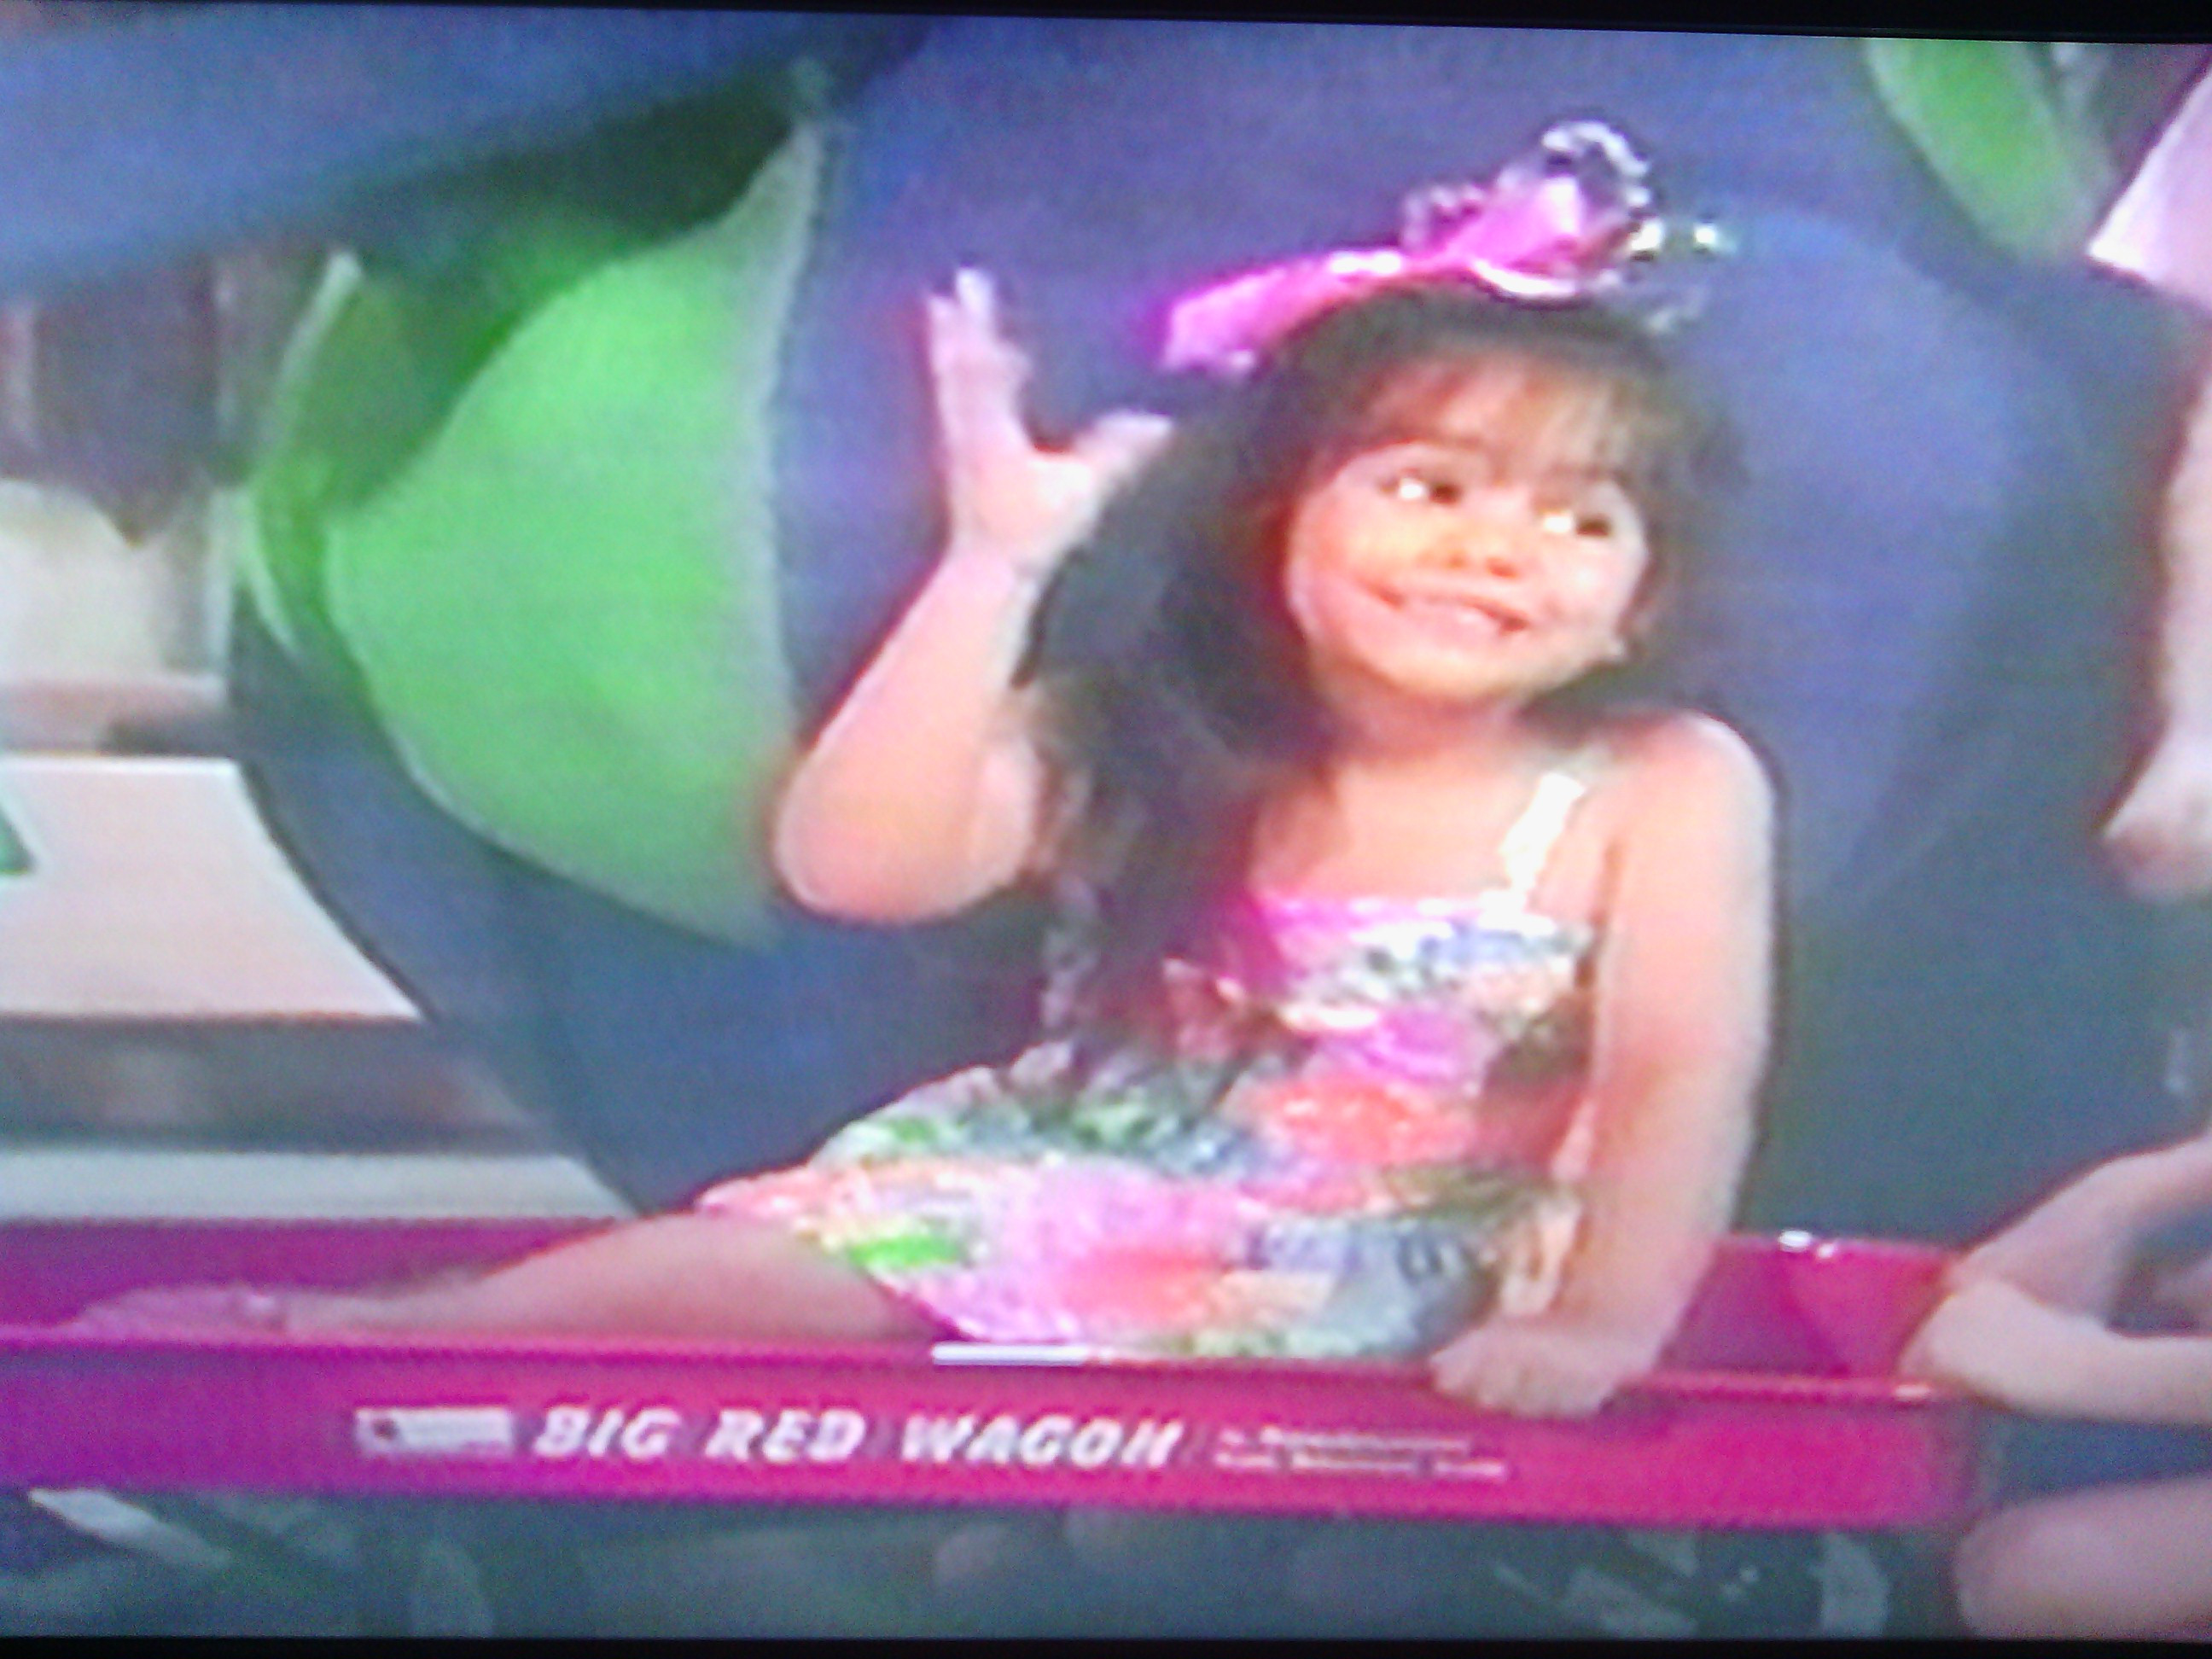 Best ideas about Barney The Backyard Show . Save or Pin Image JZuchaTina Barney Wiki Now.